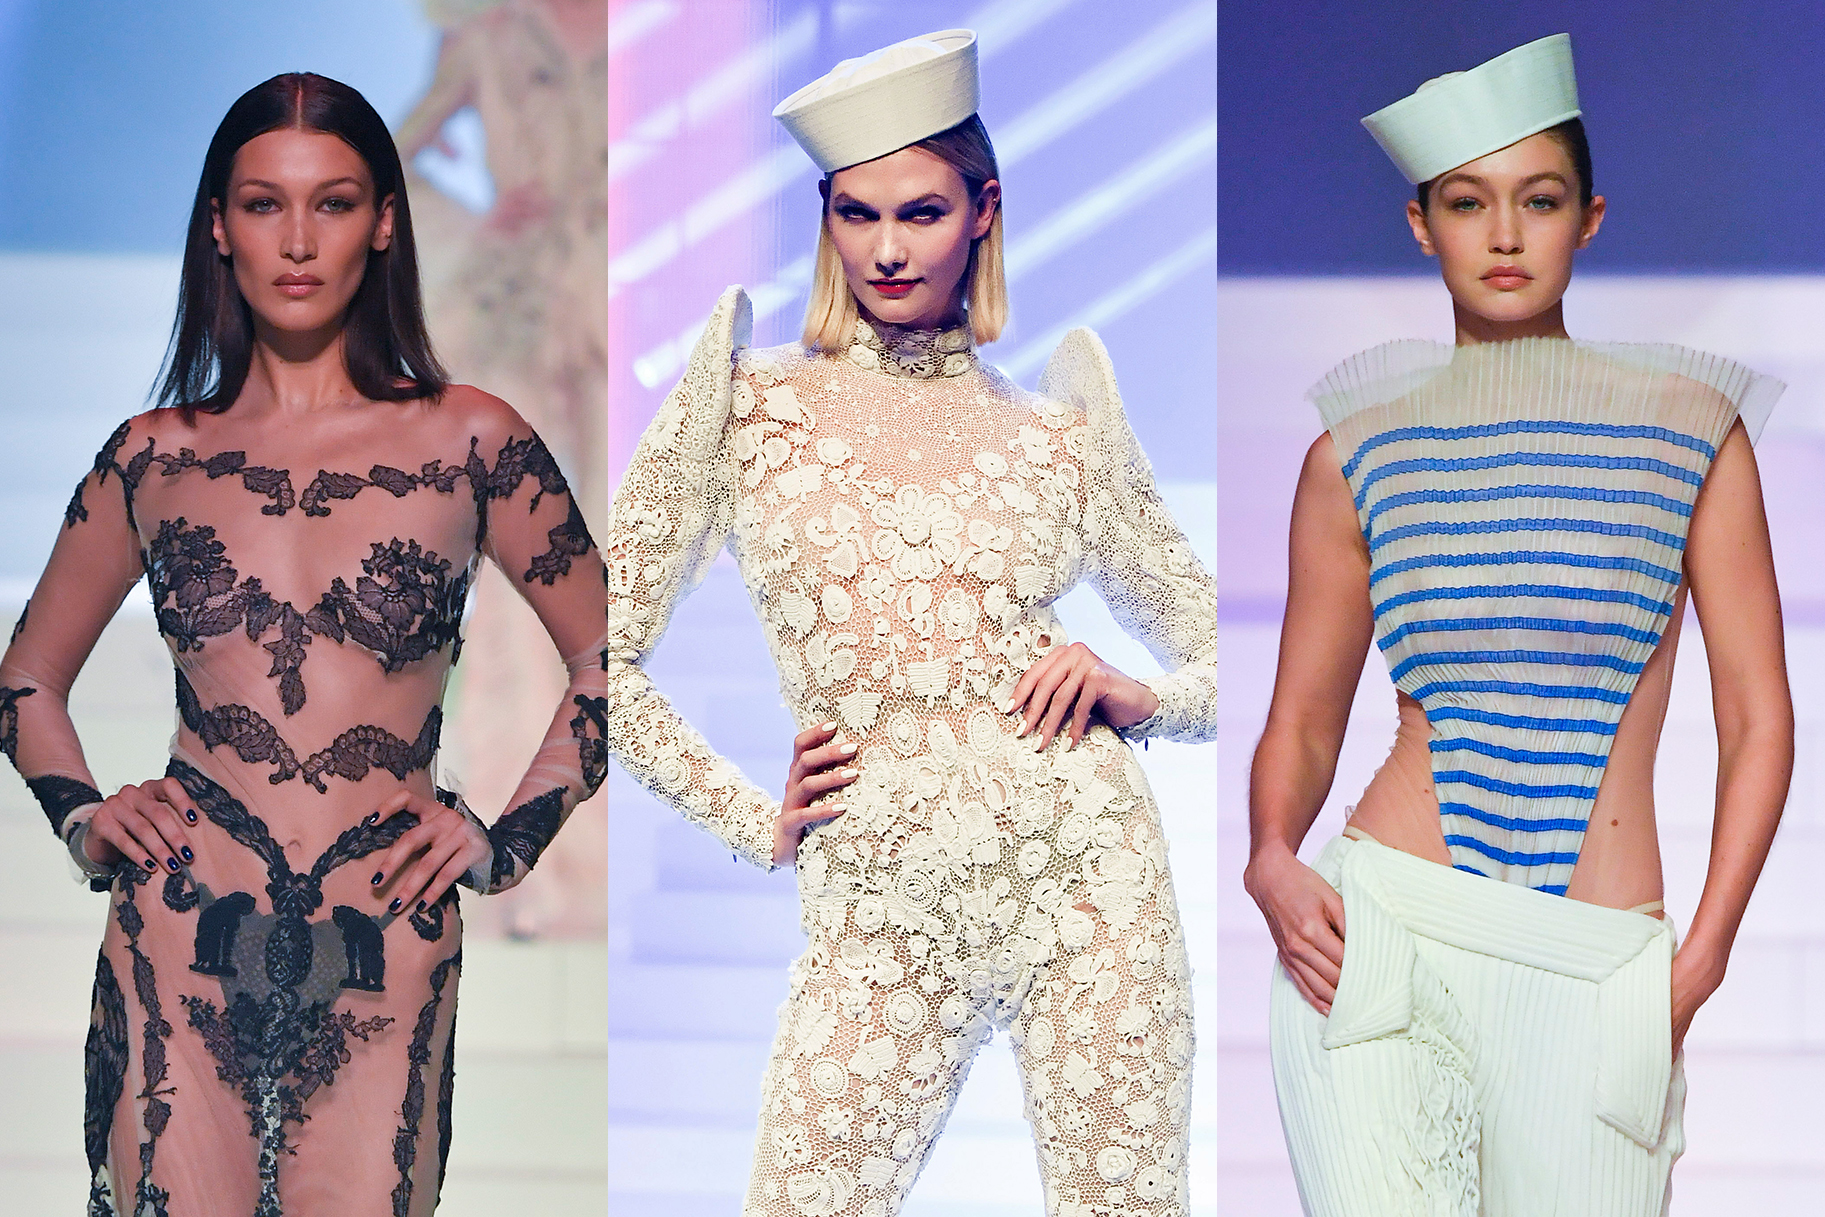 Jean Paul Gaultier Final Runway Bravolebs